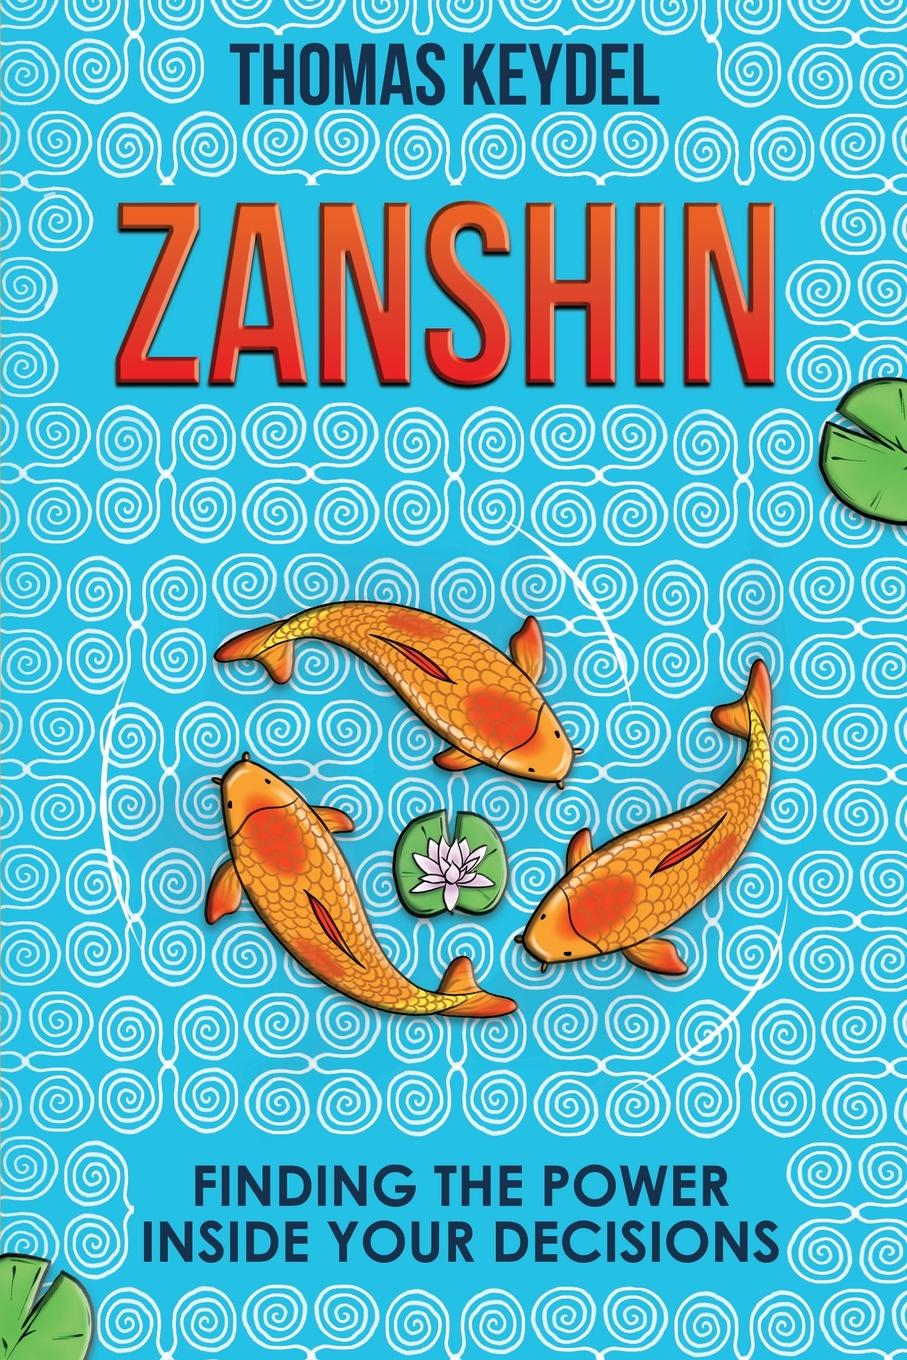 Zanshin. Finding the Power Inside Your Decisions Everyone experiences indecision. Here is a book to help you...